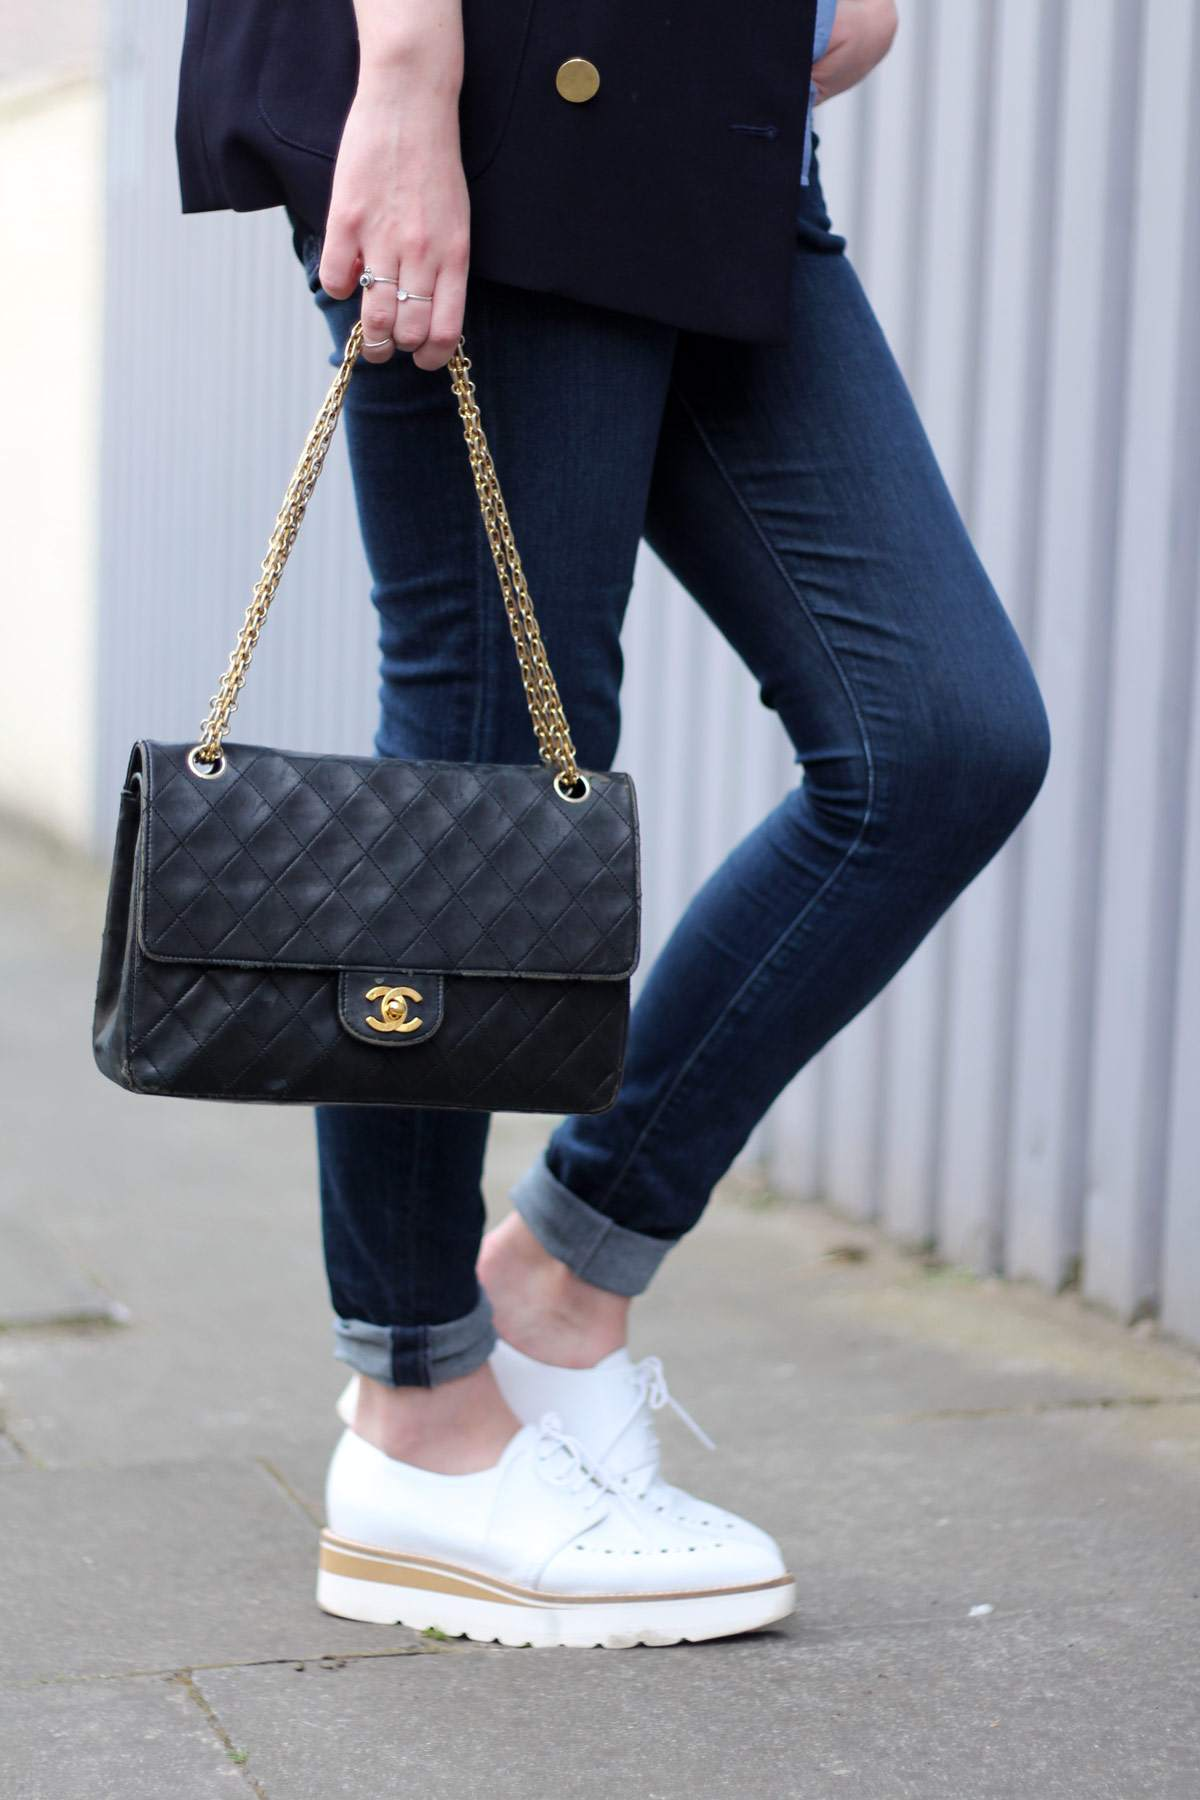 archive-by-alexa-blazer-vintage-chanel-bag-brogue-platform-loafers-14